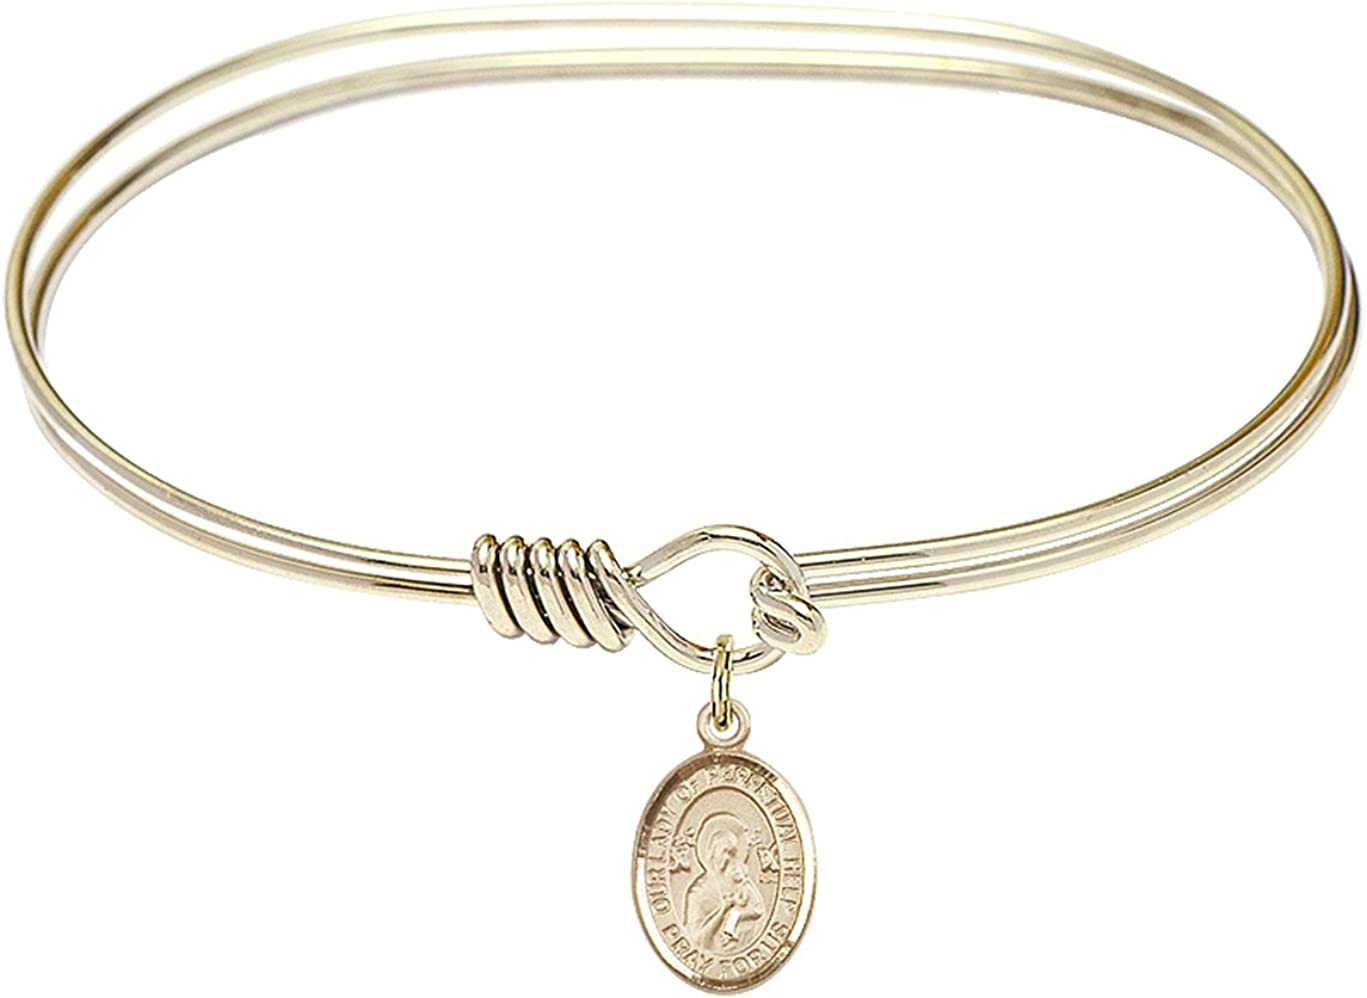 Our Lady Of Assumption Charm On A 6 1//4 Inch Round Eye Hook Bangle Bracelet